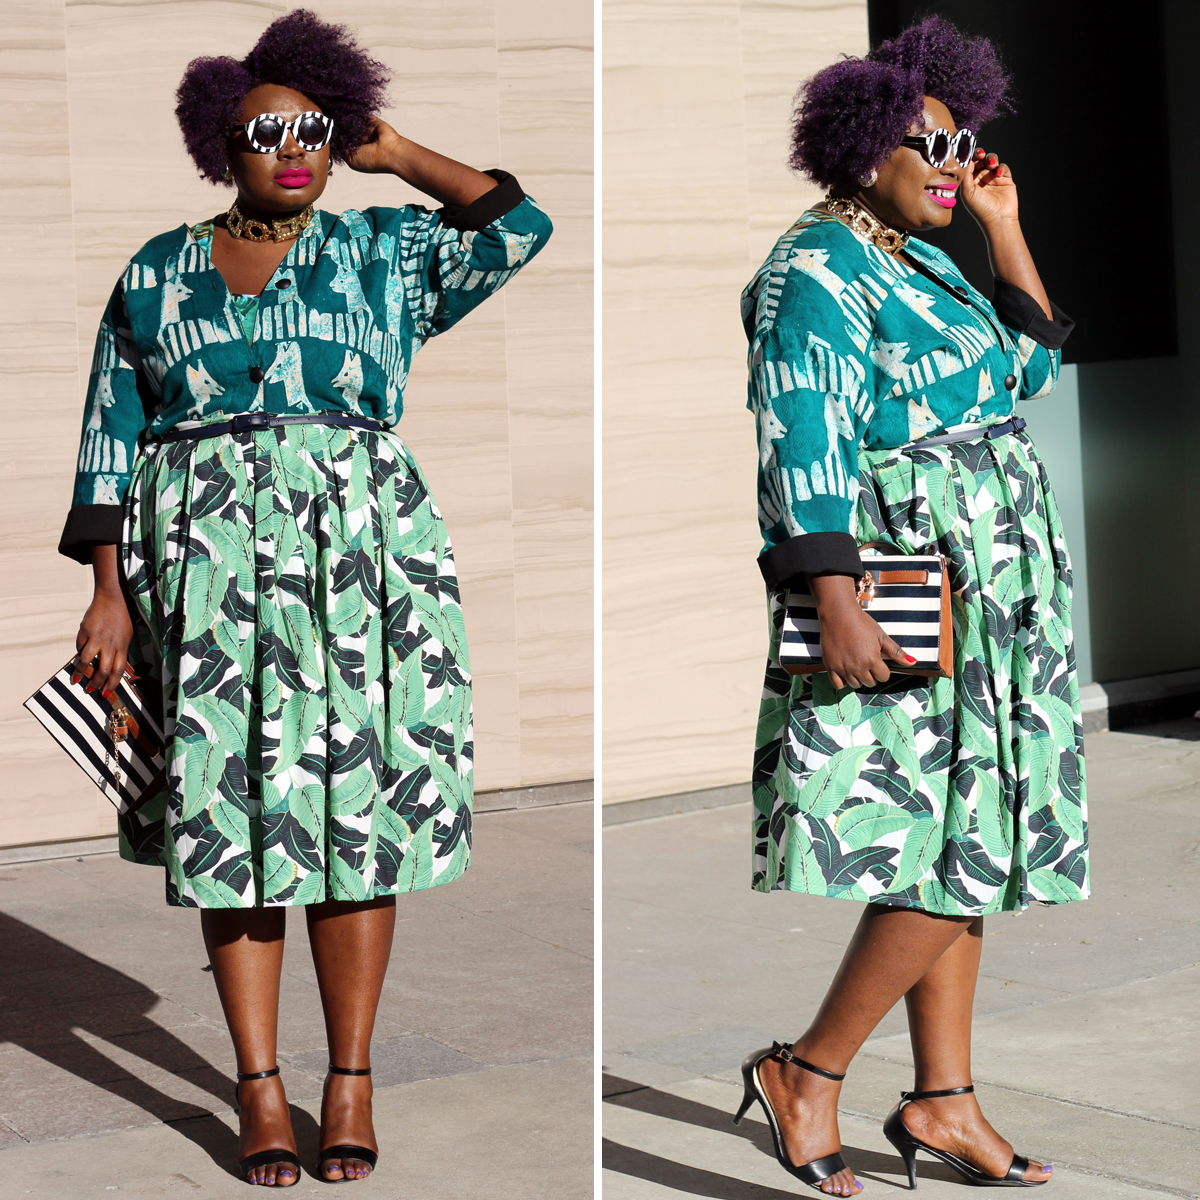 plus size style fashion week outfit fashion week street style 09